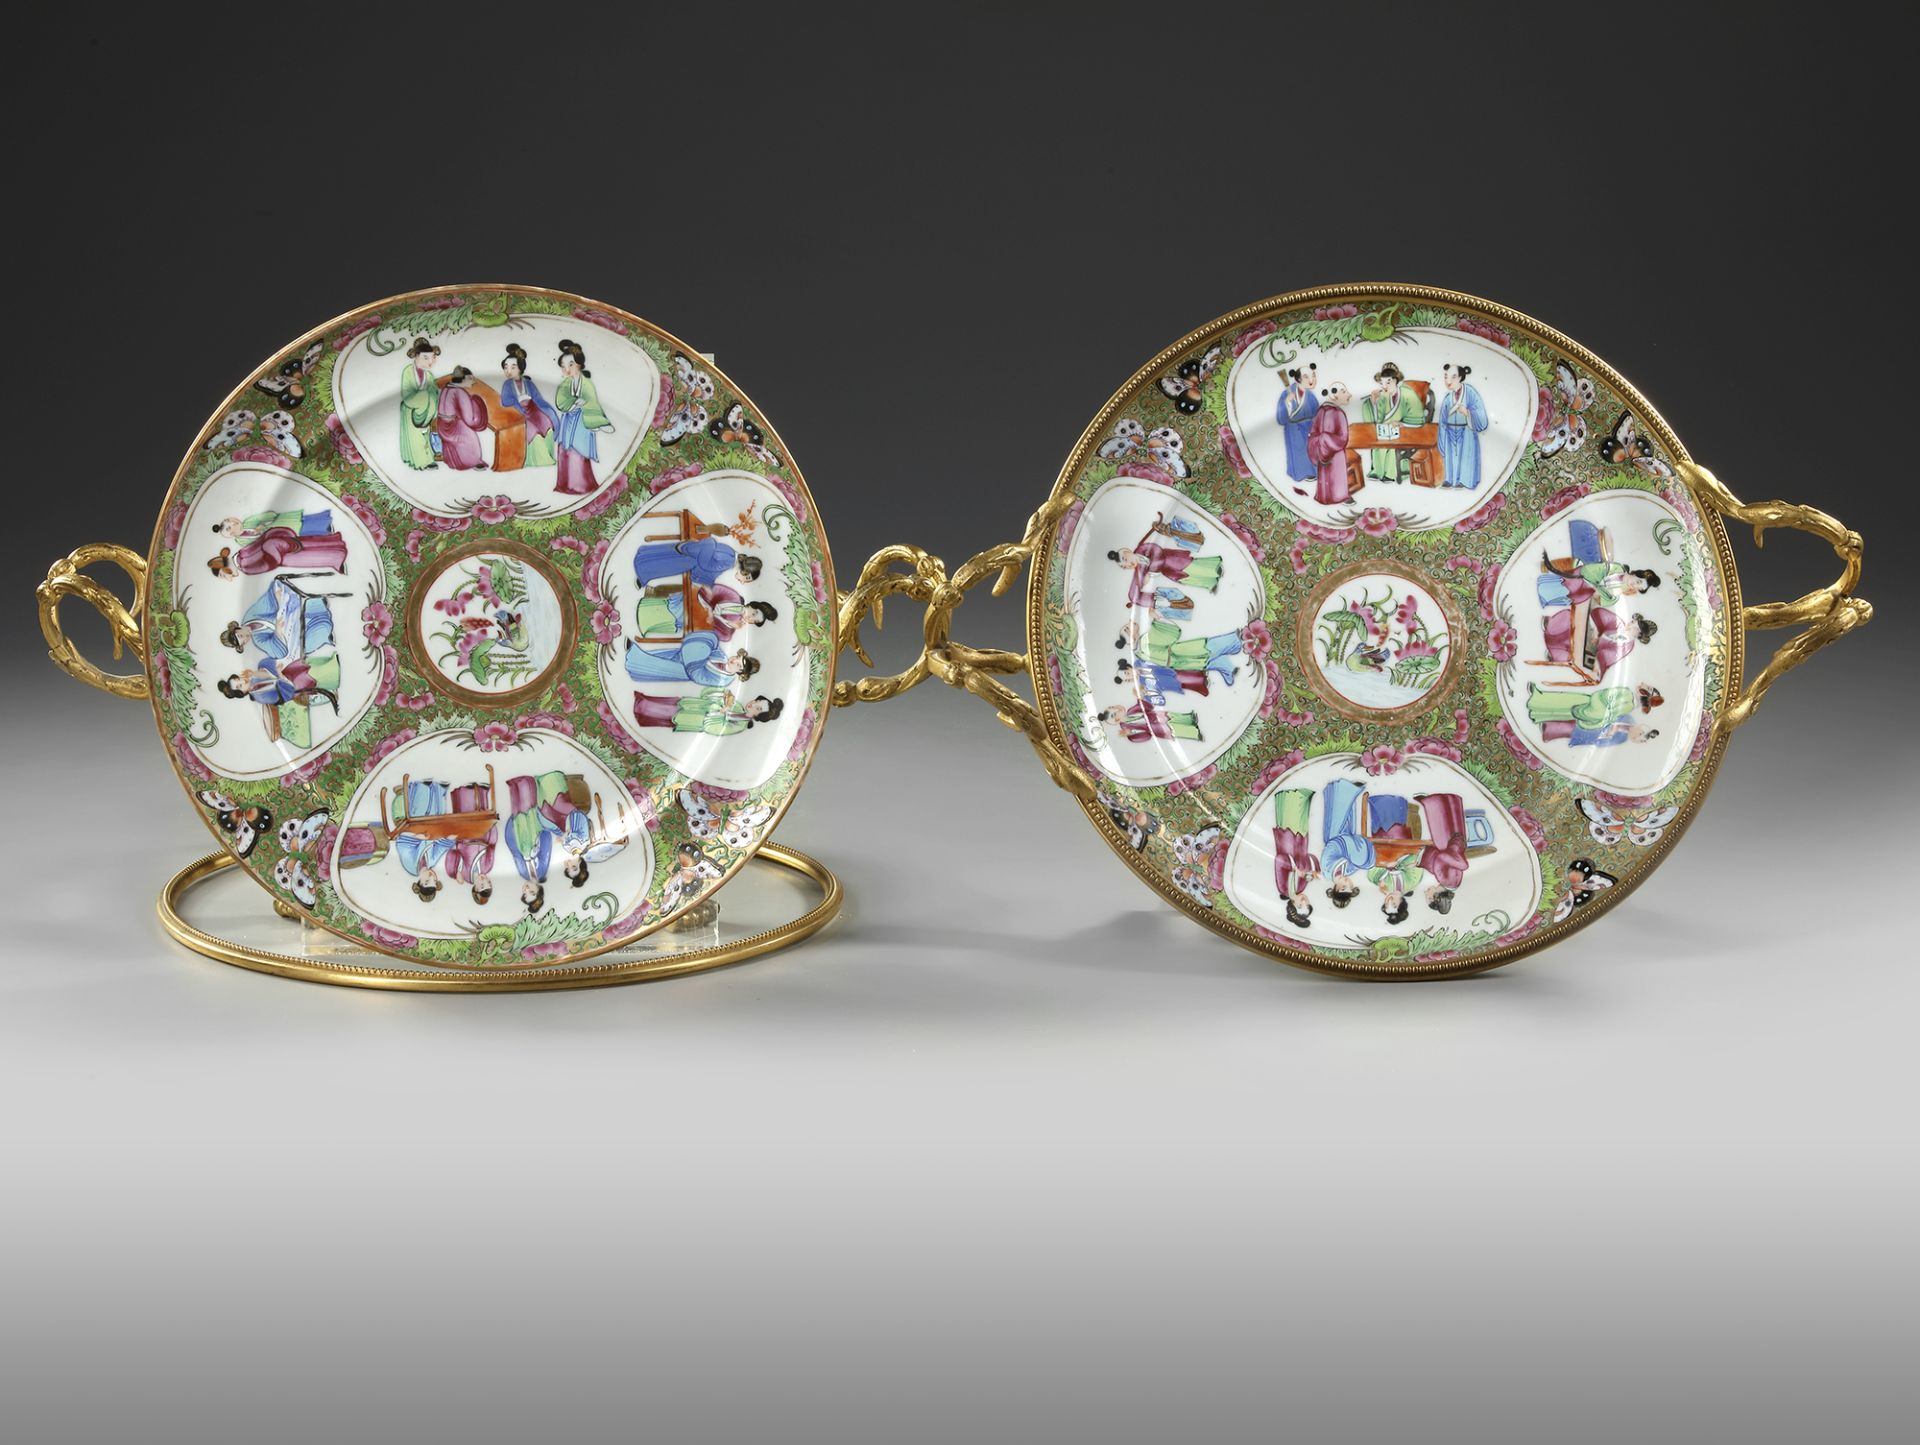 A PAIR OF CANTONESE PLATES, 20TH CENTURY - Image 2 of 4